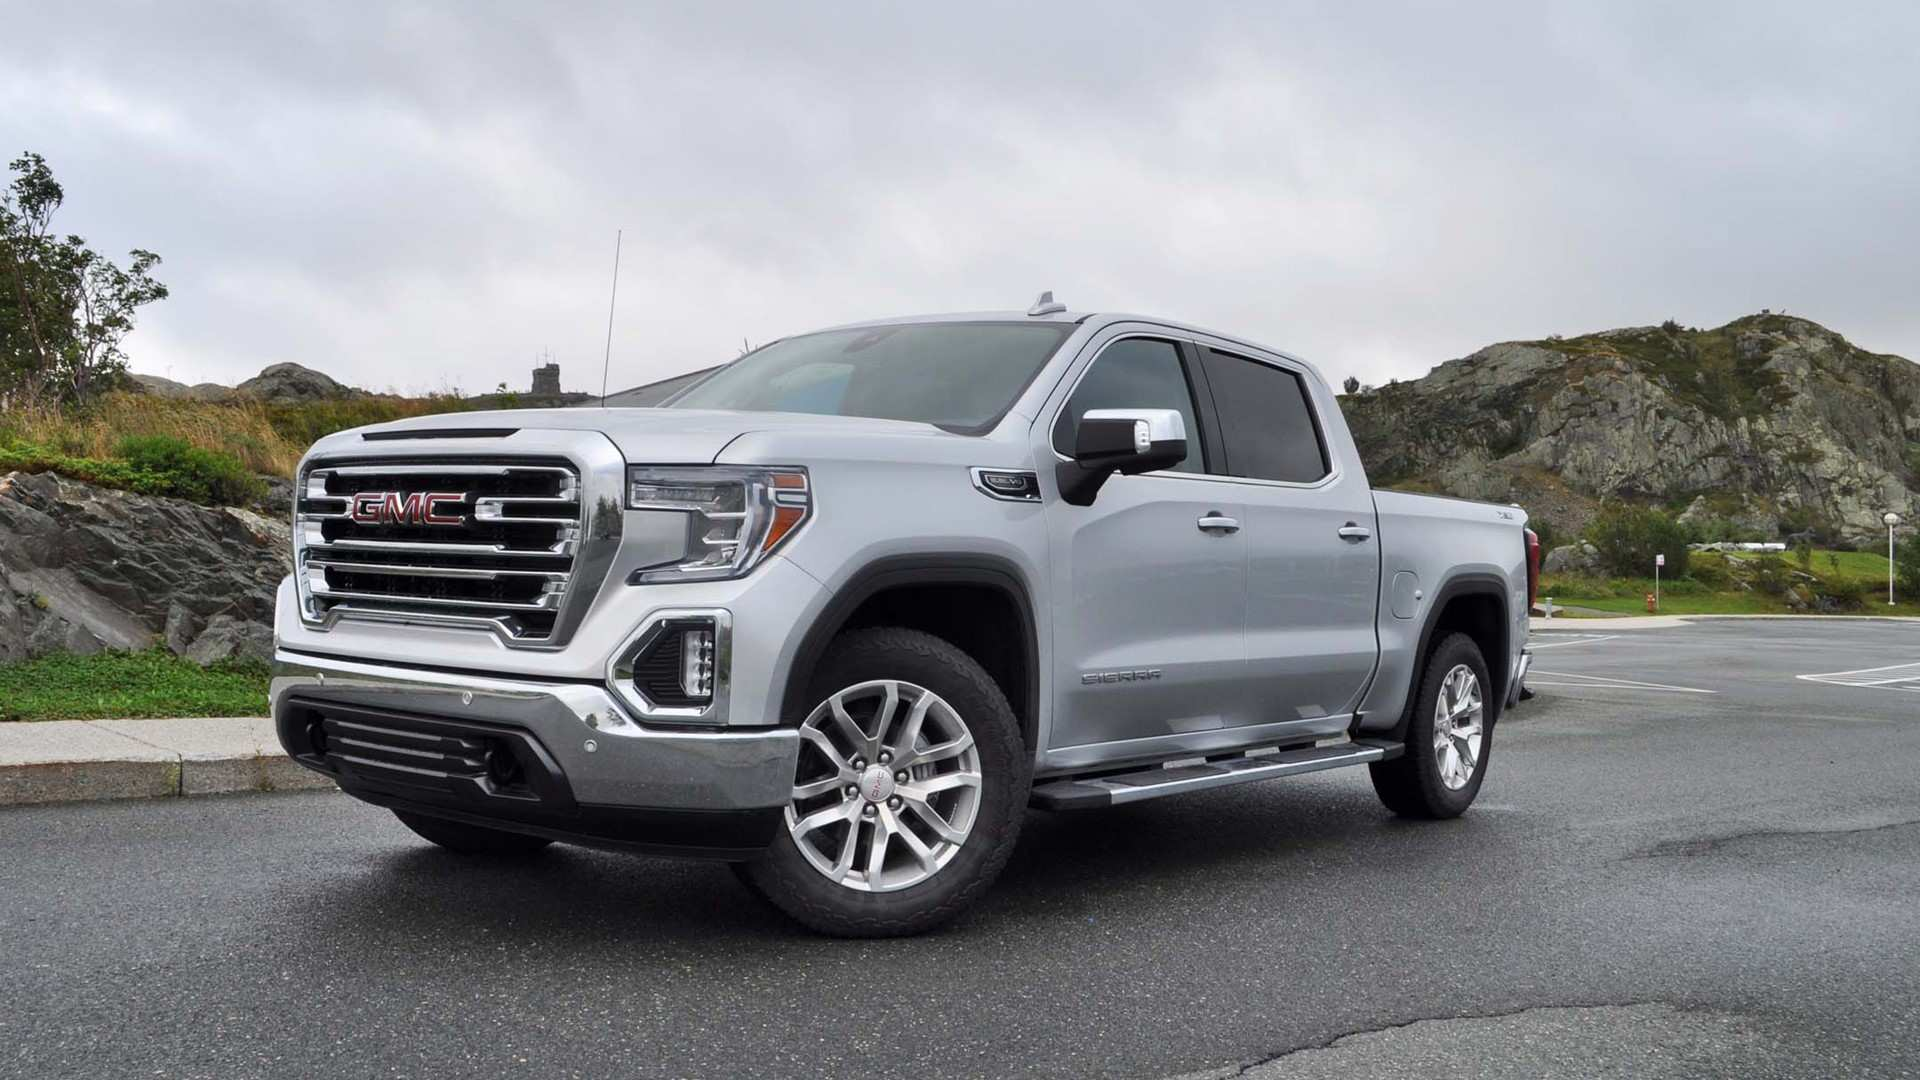 28 Gallery of Tailgate On 2019 Gmc Sierra First Drive Ratings for Tailgate On 2019 Gmc Sierra First Drive